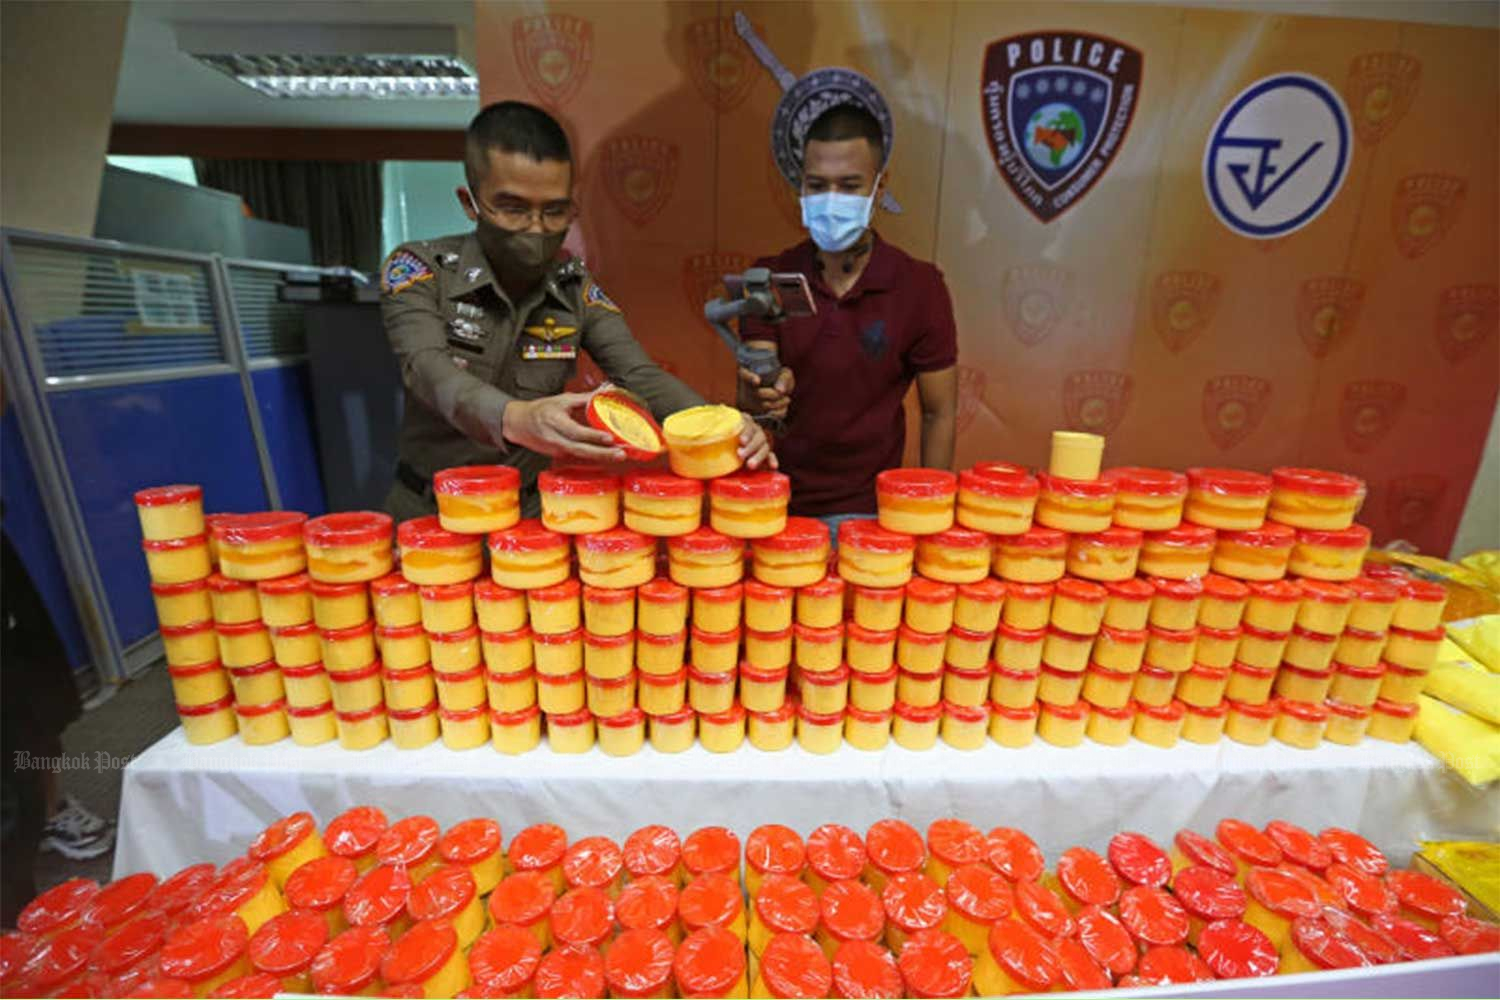 Unregistered whitening cream seized during raids on four factories is on display during a police briefing on Thursday. (Photo by Varuth Hirunyatheb)